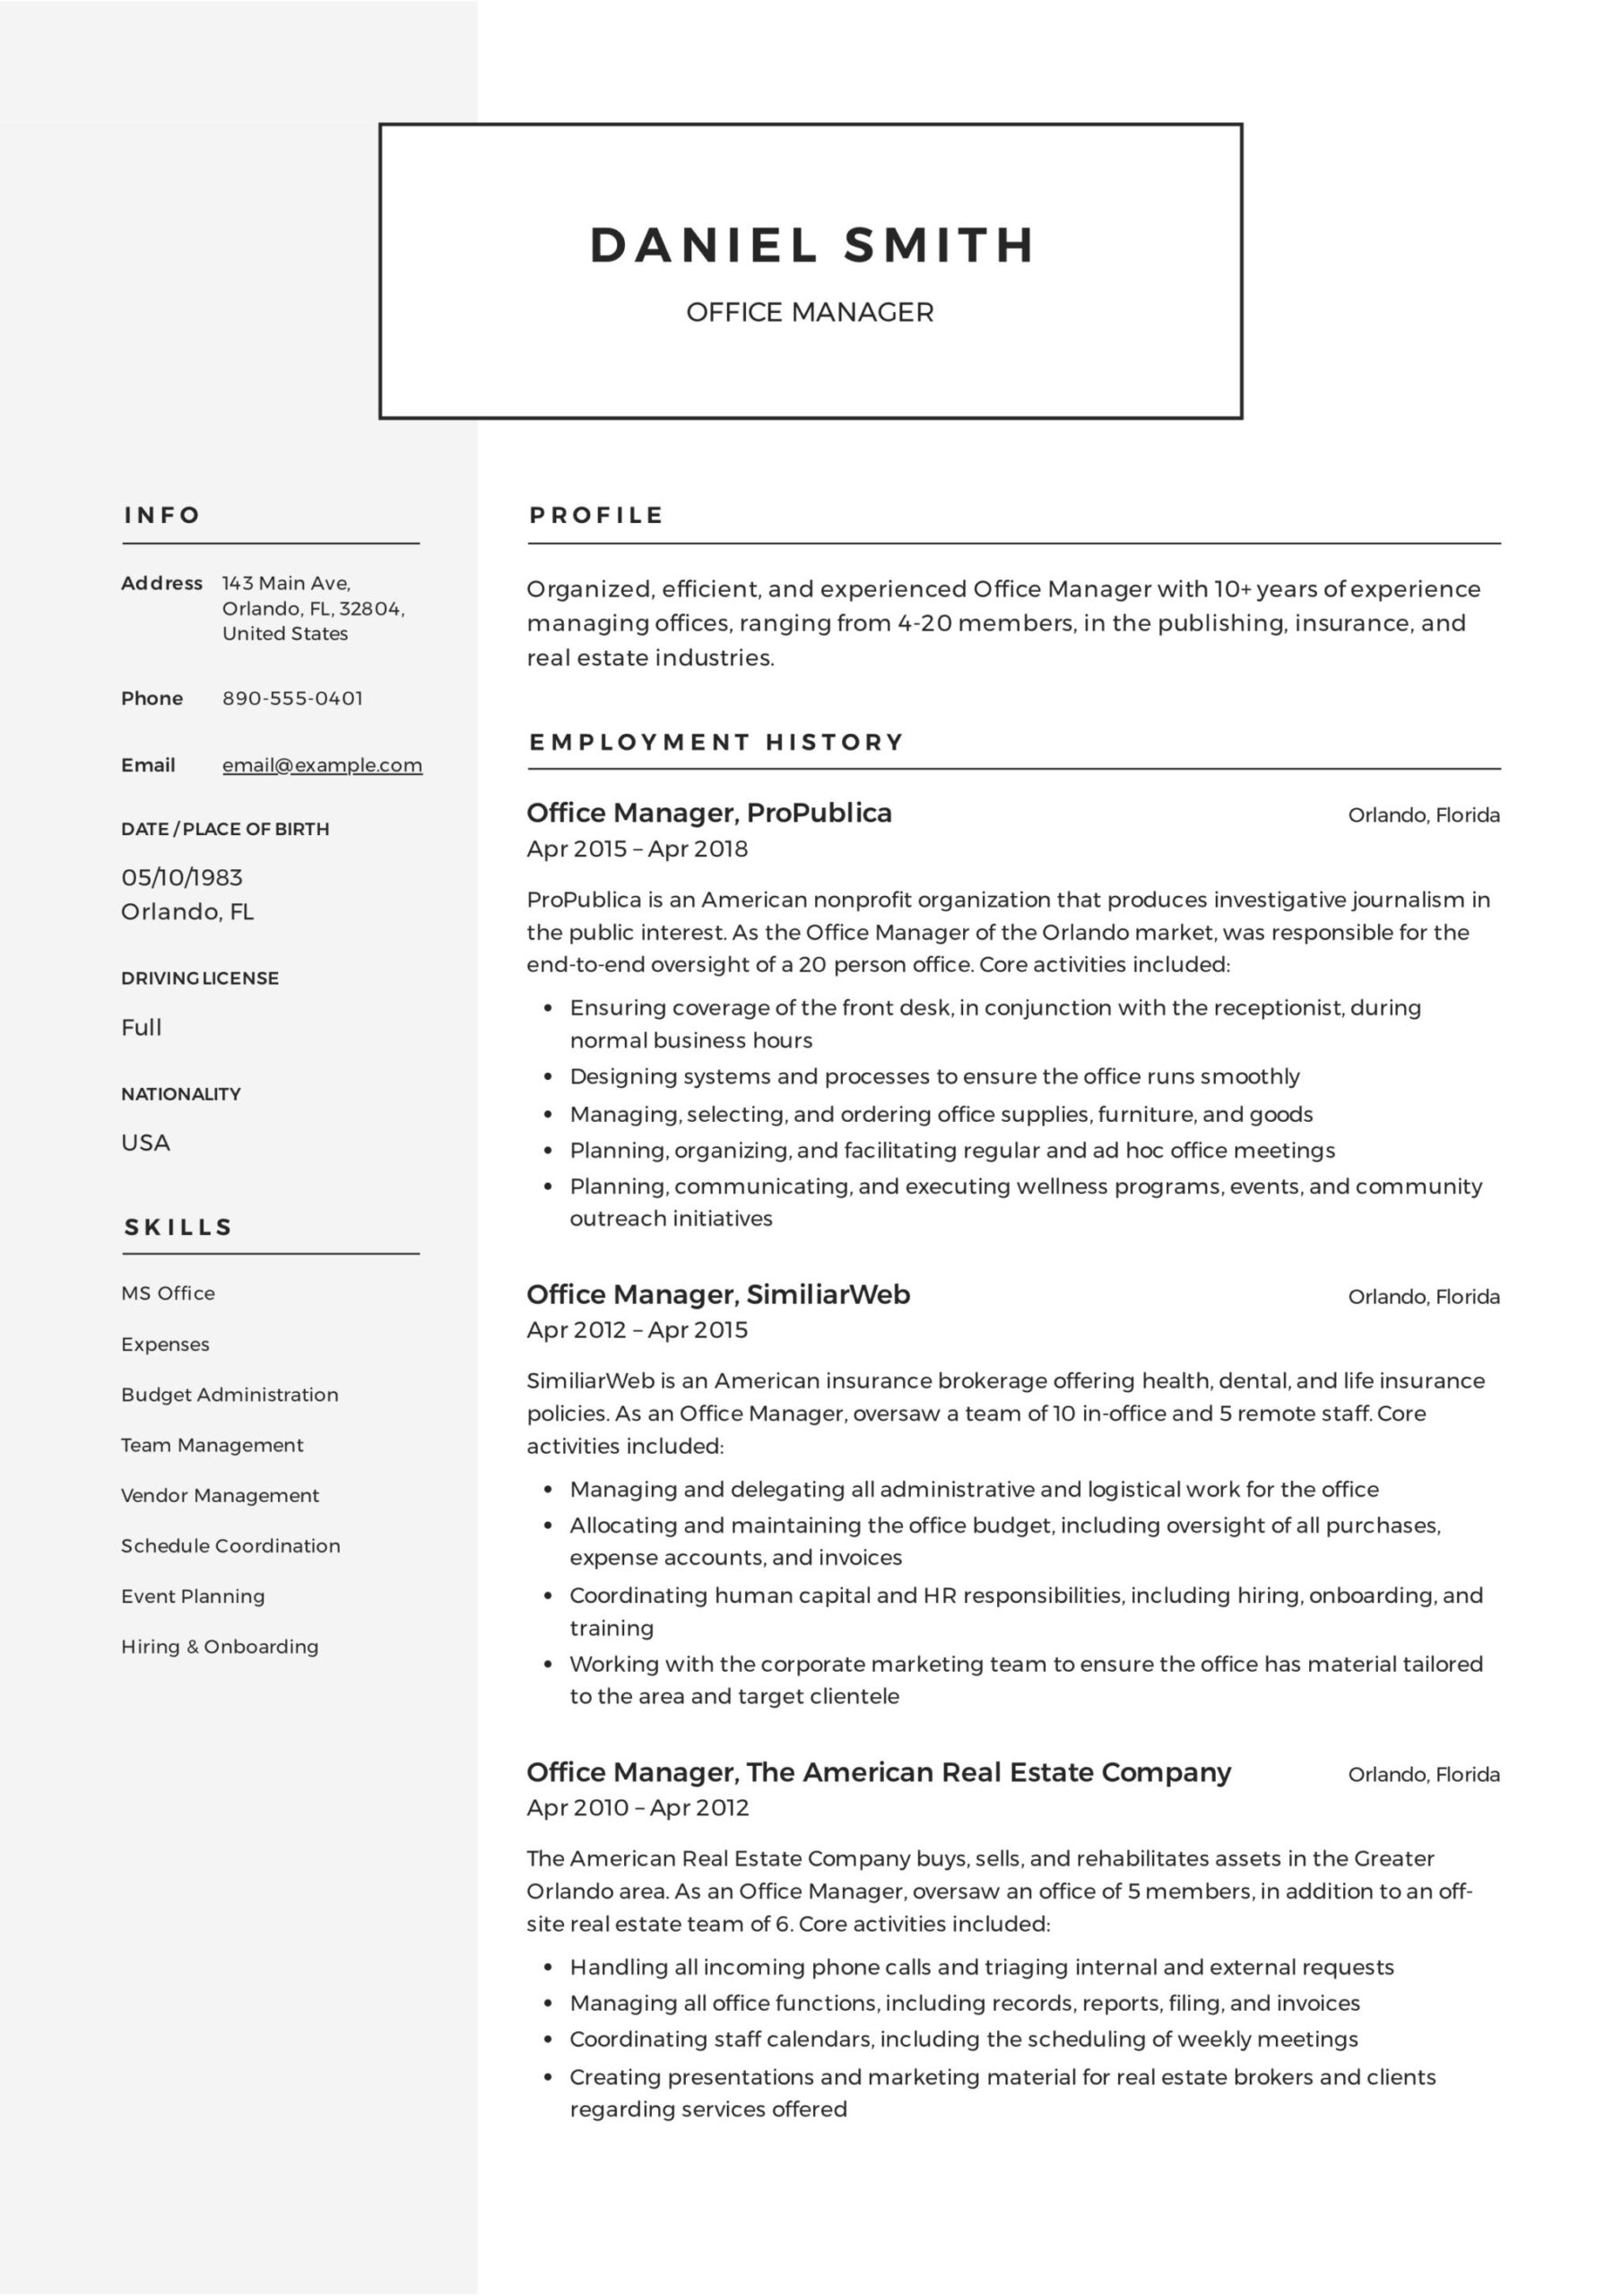 office manager resume guide samples pdf examples sample correctional officer duties and Resume Office Manager Resume Examples 2019